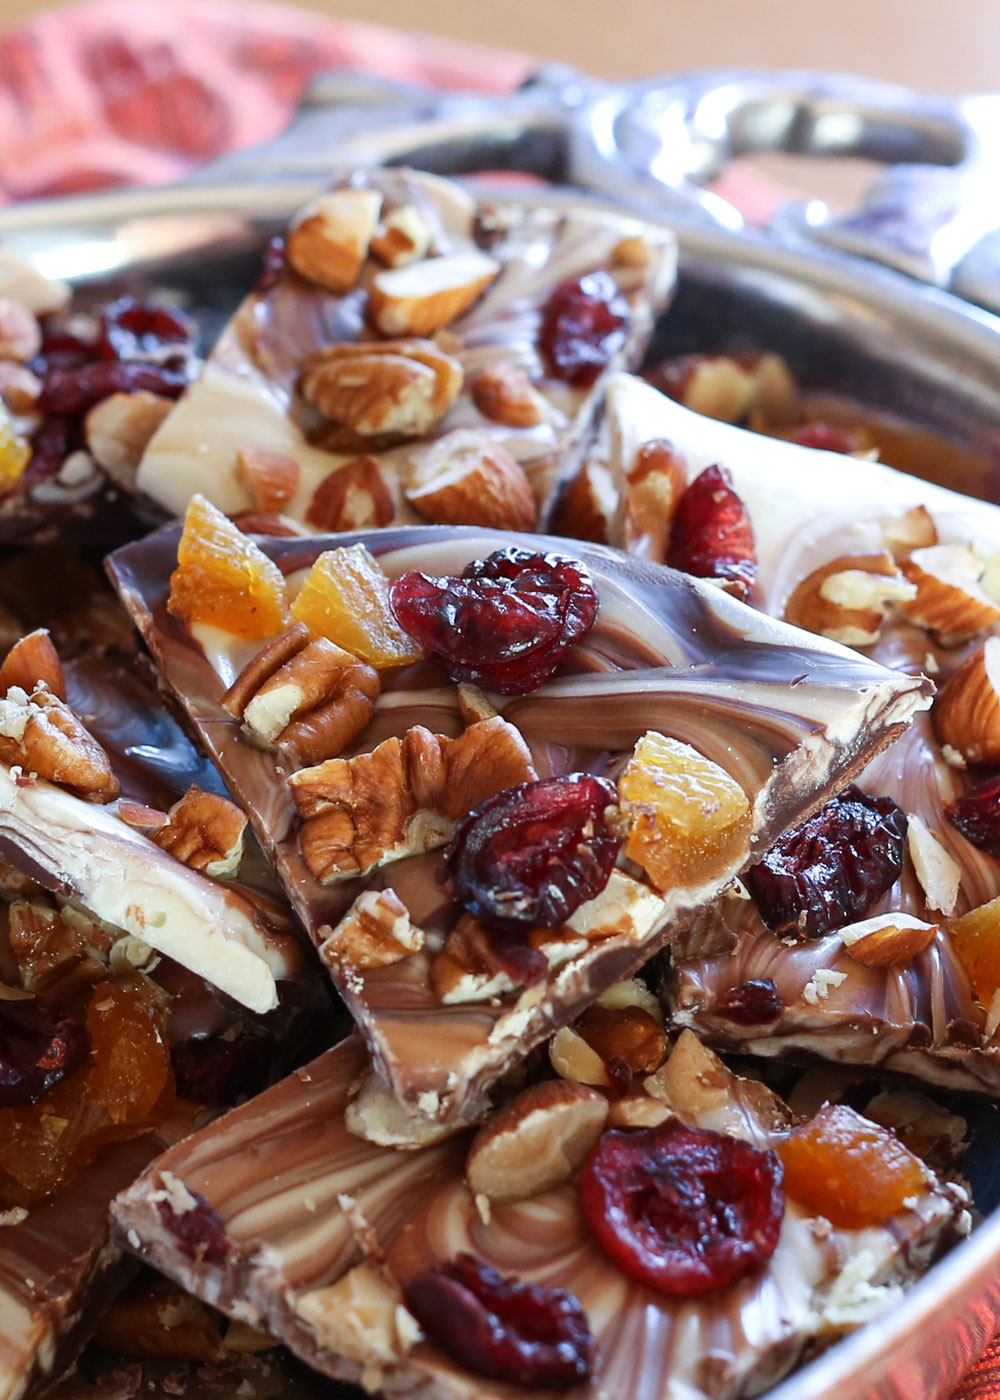 Fruit and Nut Chocolate Bark is perfect for holiday gifts - by Barefeet In The Kitchen